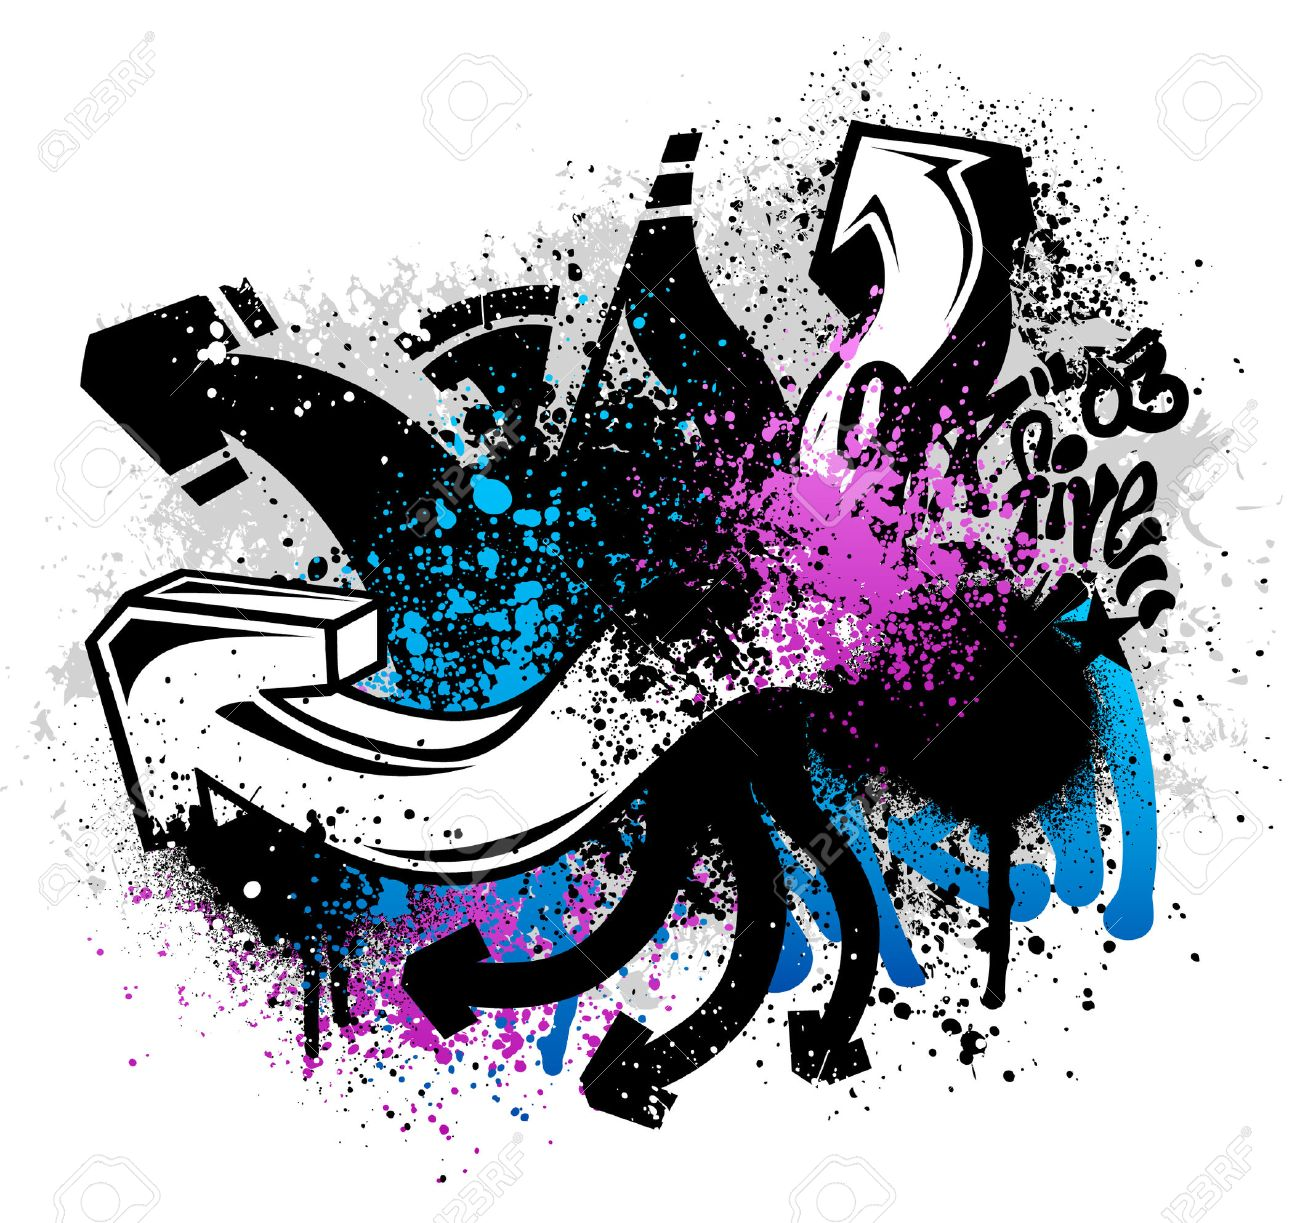 Black graffiti sketch with blue and pink grunge paint splatter Stock Vector - 4596915